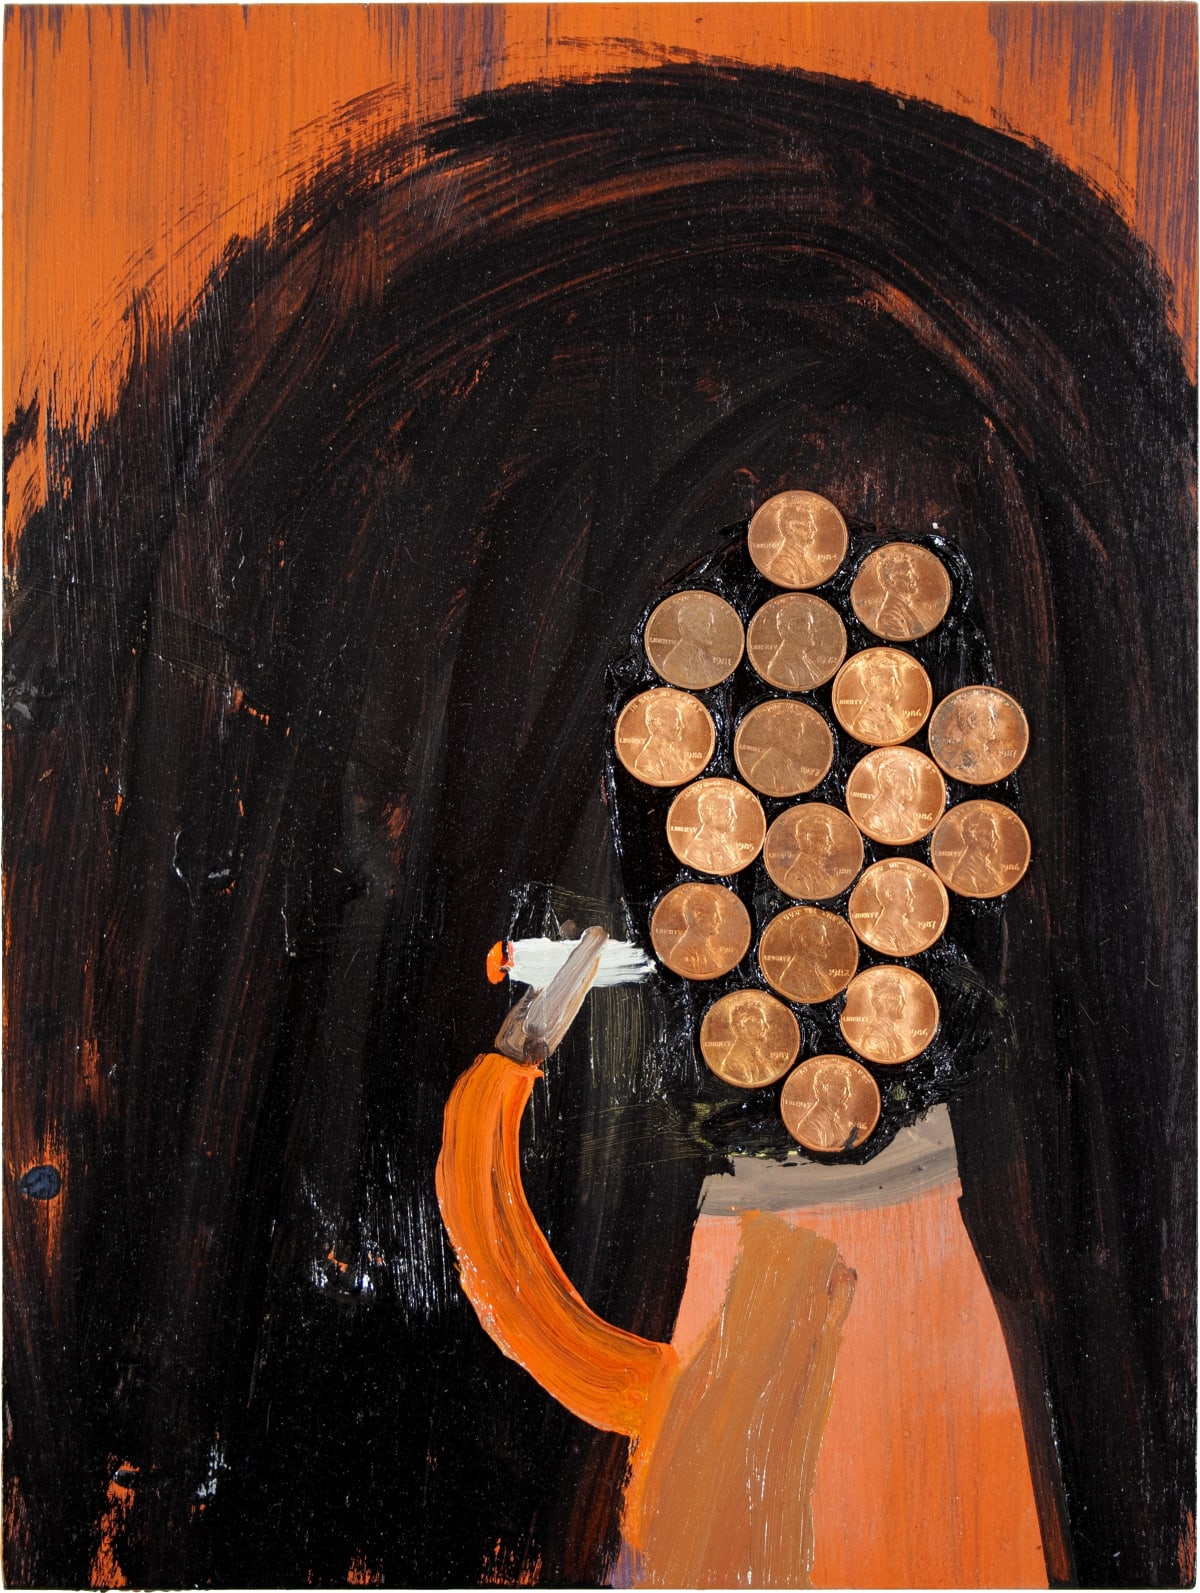 """Charles Yuen's """" Copper Head"""" using oil and coins on panel in various shapes of copper, orange, maroon and black. The work depict a person whose head is completely made out of pennies, detailing the """"Copper Head"""" title."""